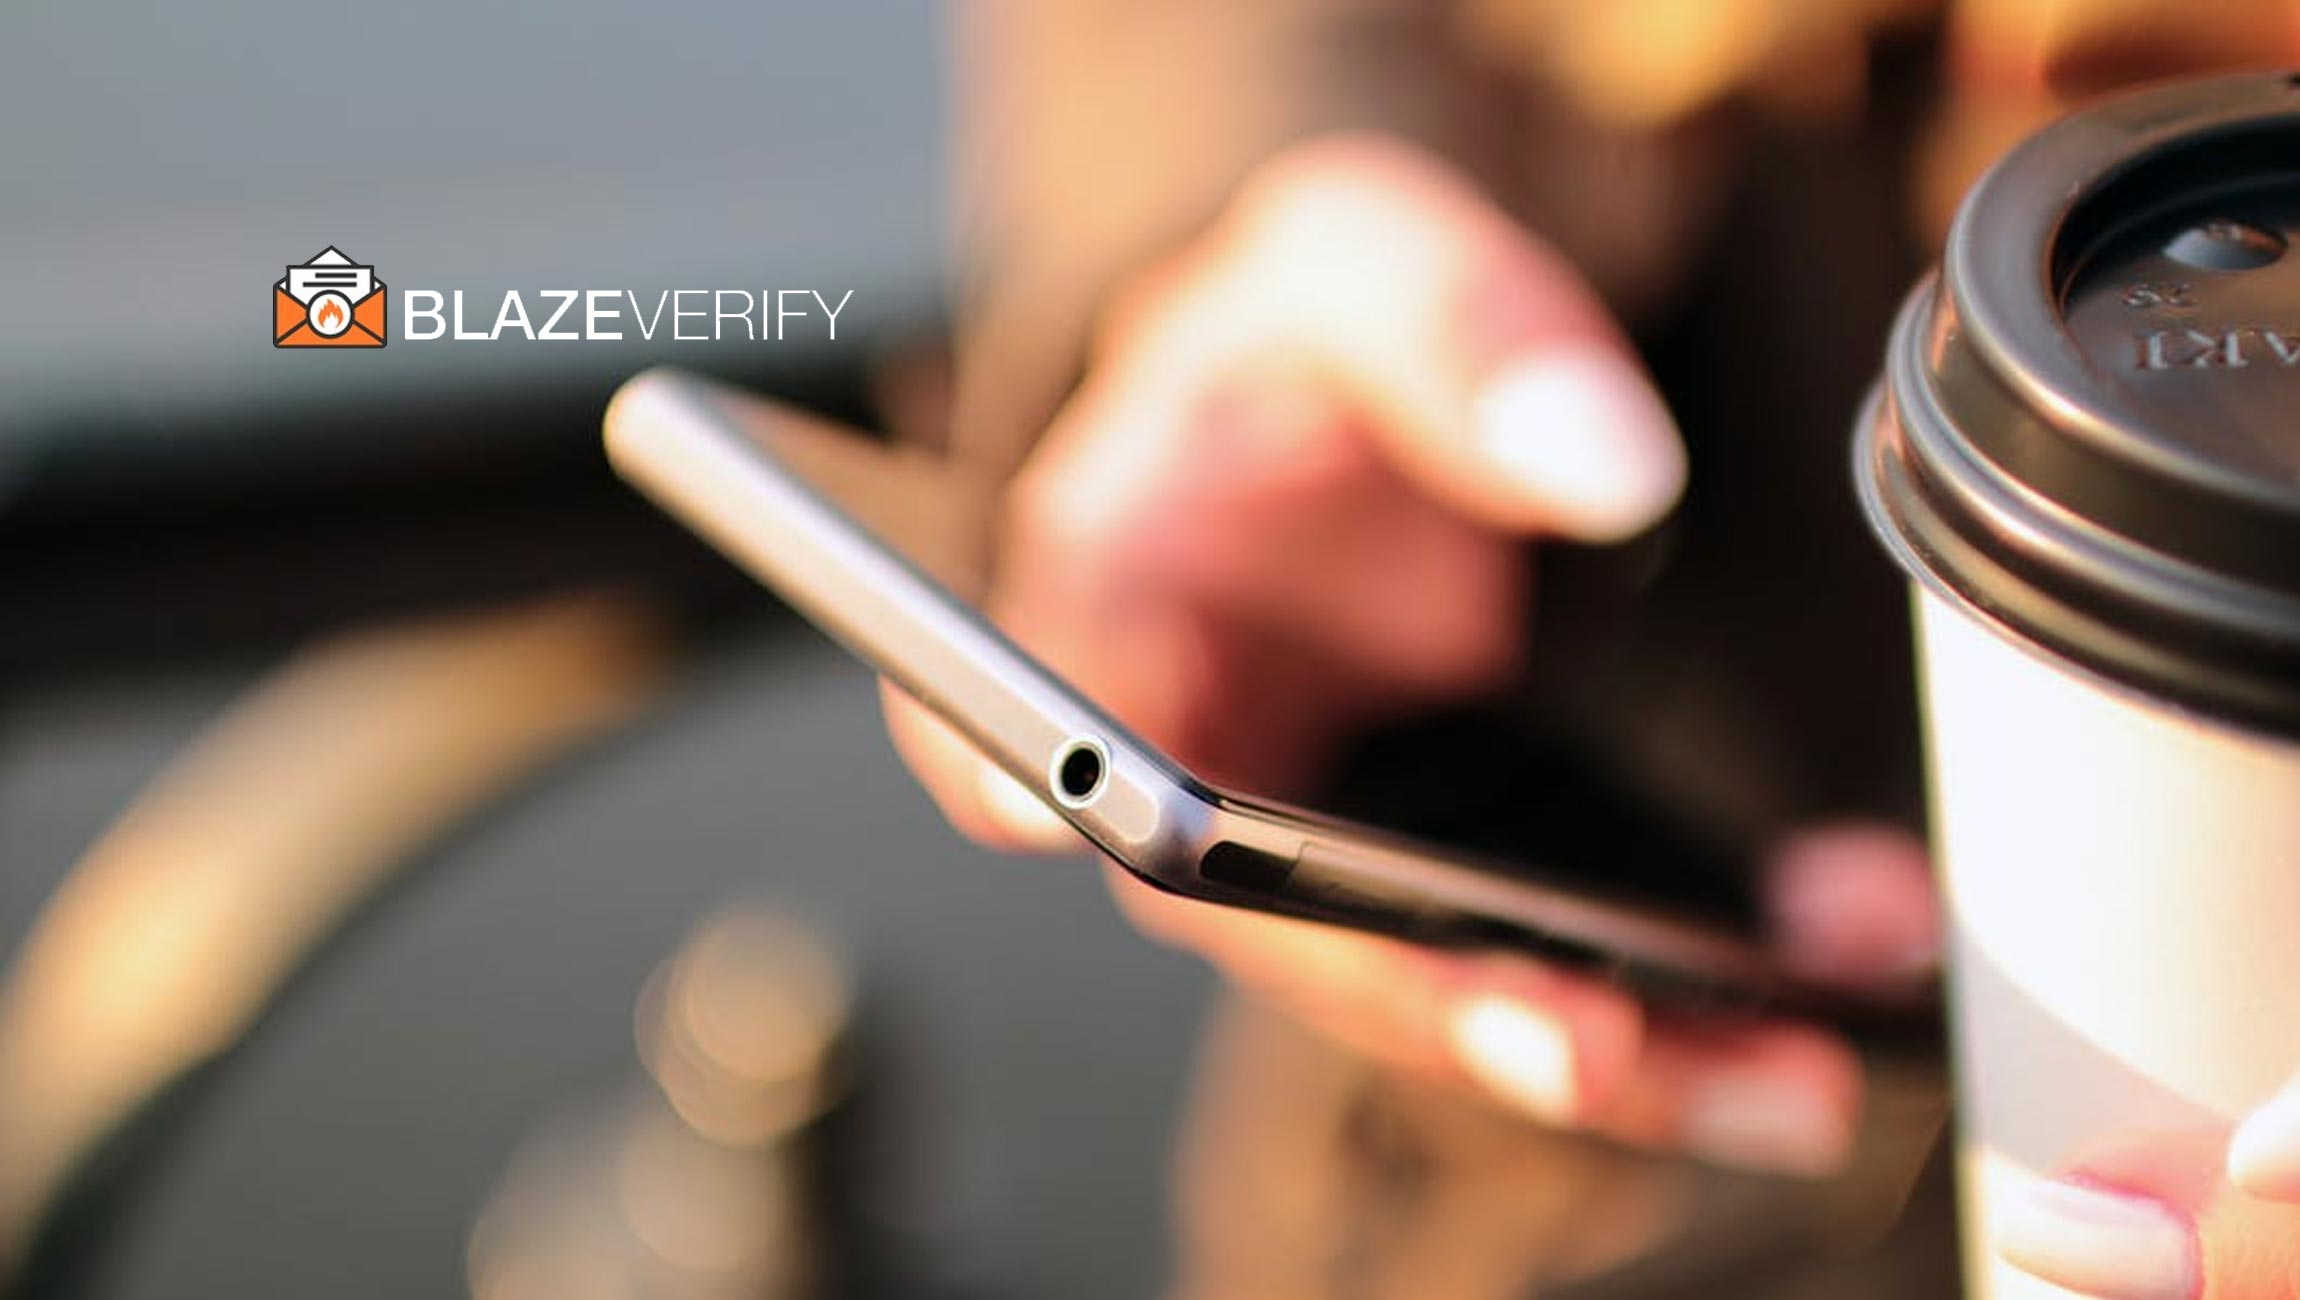 Blaze Verify Partners With Intercom to Provide Accurate and Reliable Email Verification